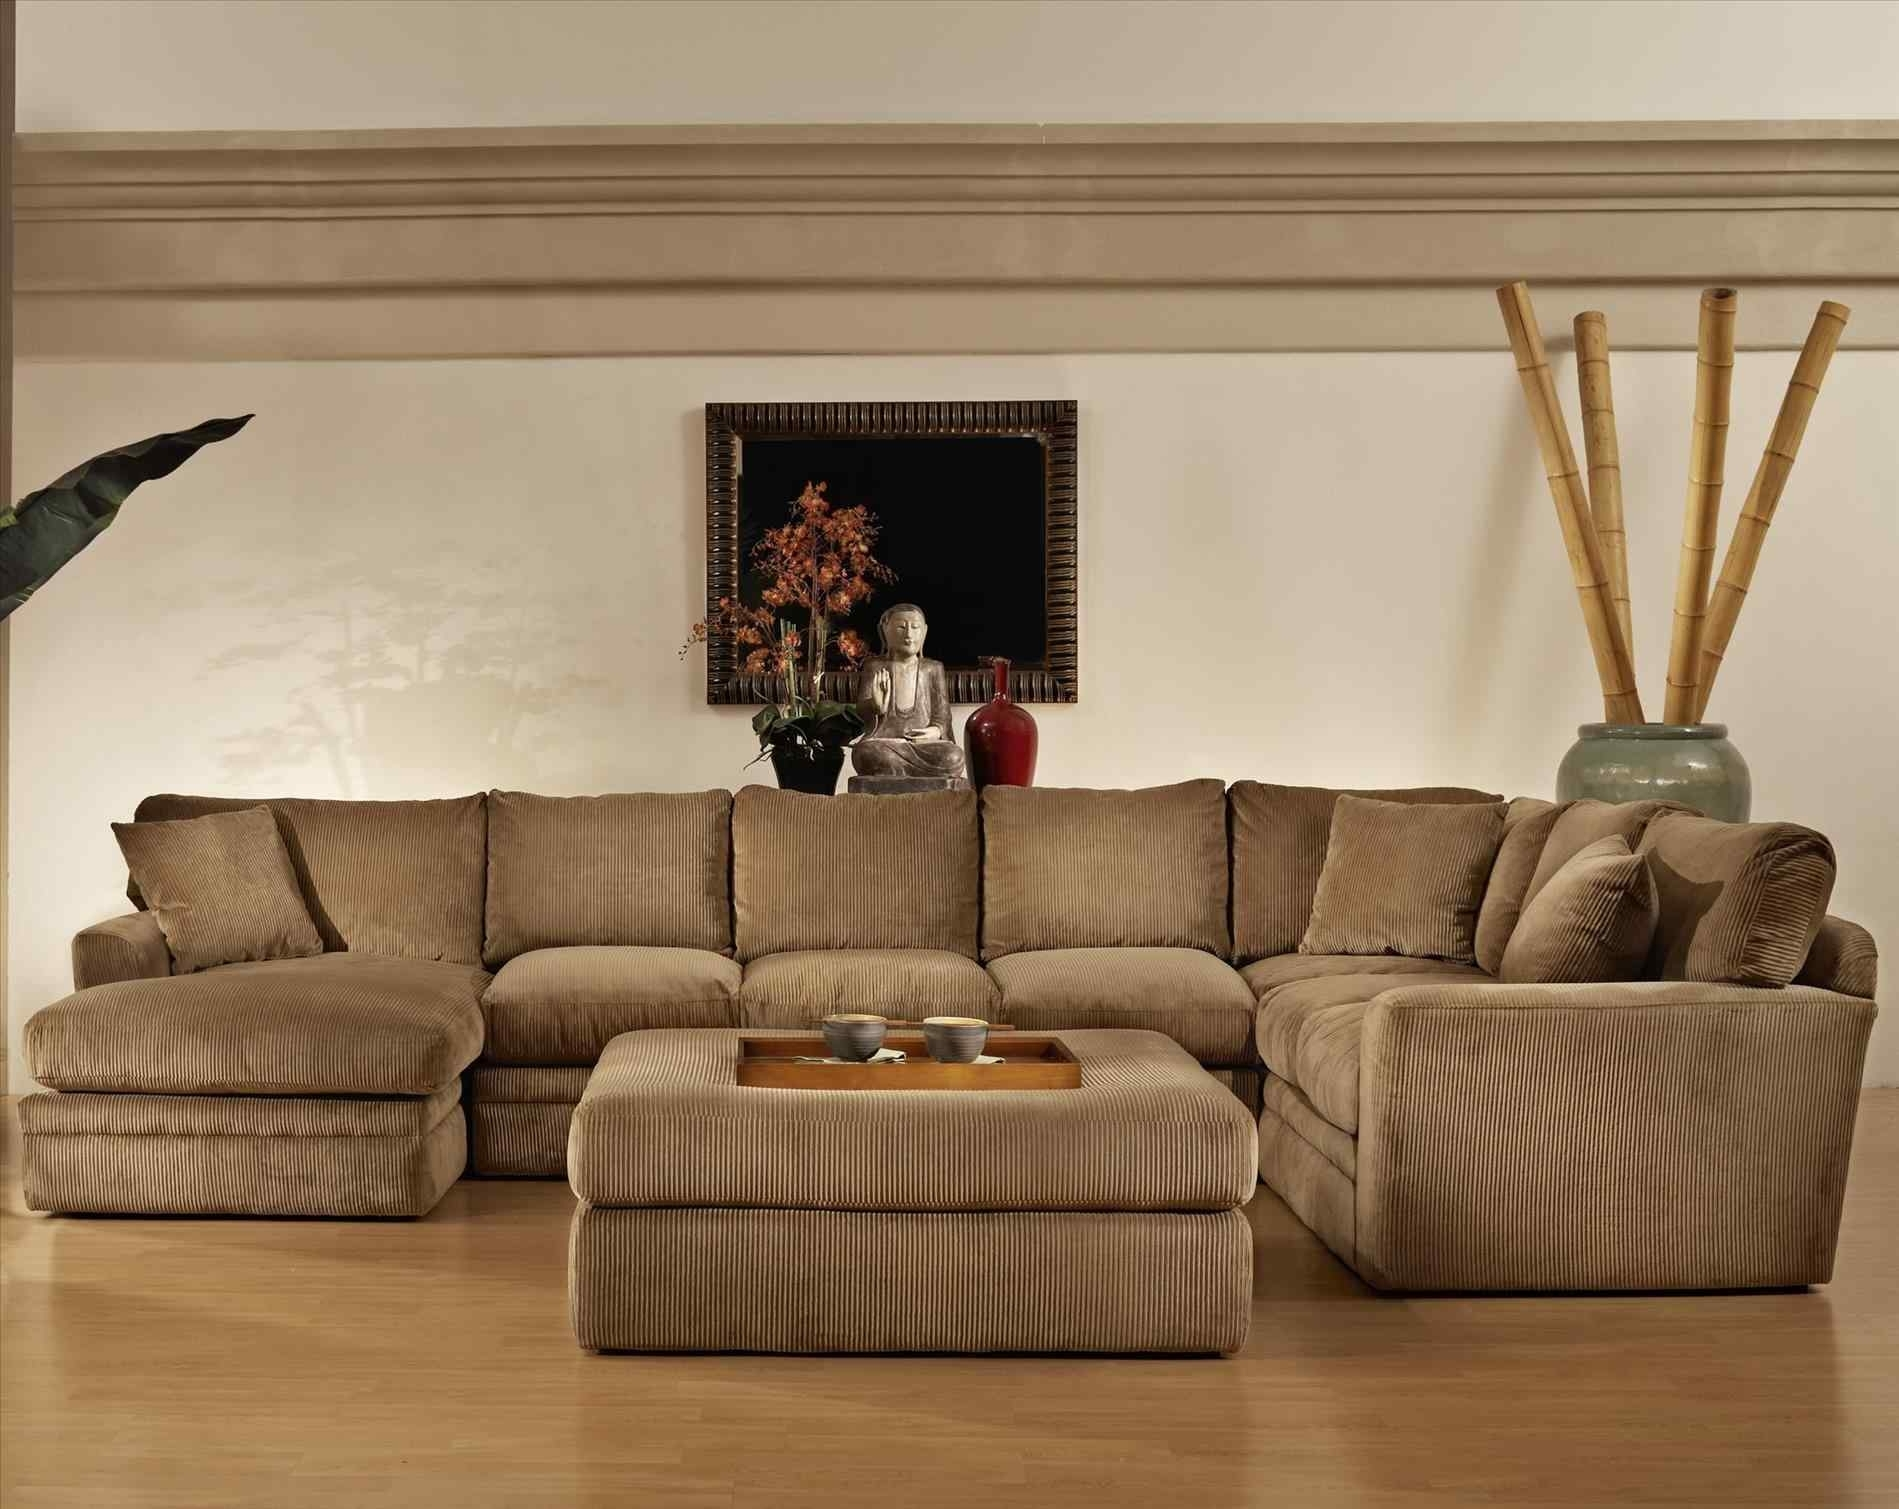 Sofa Sets For Living Room In Hyderabad Set Design India Dubai Inside Sectional Sofas In Hyderabad (View 9 of 10)